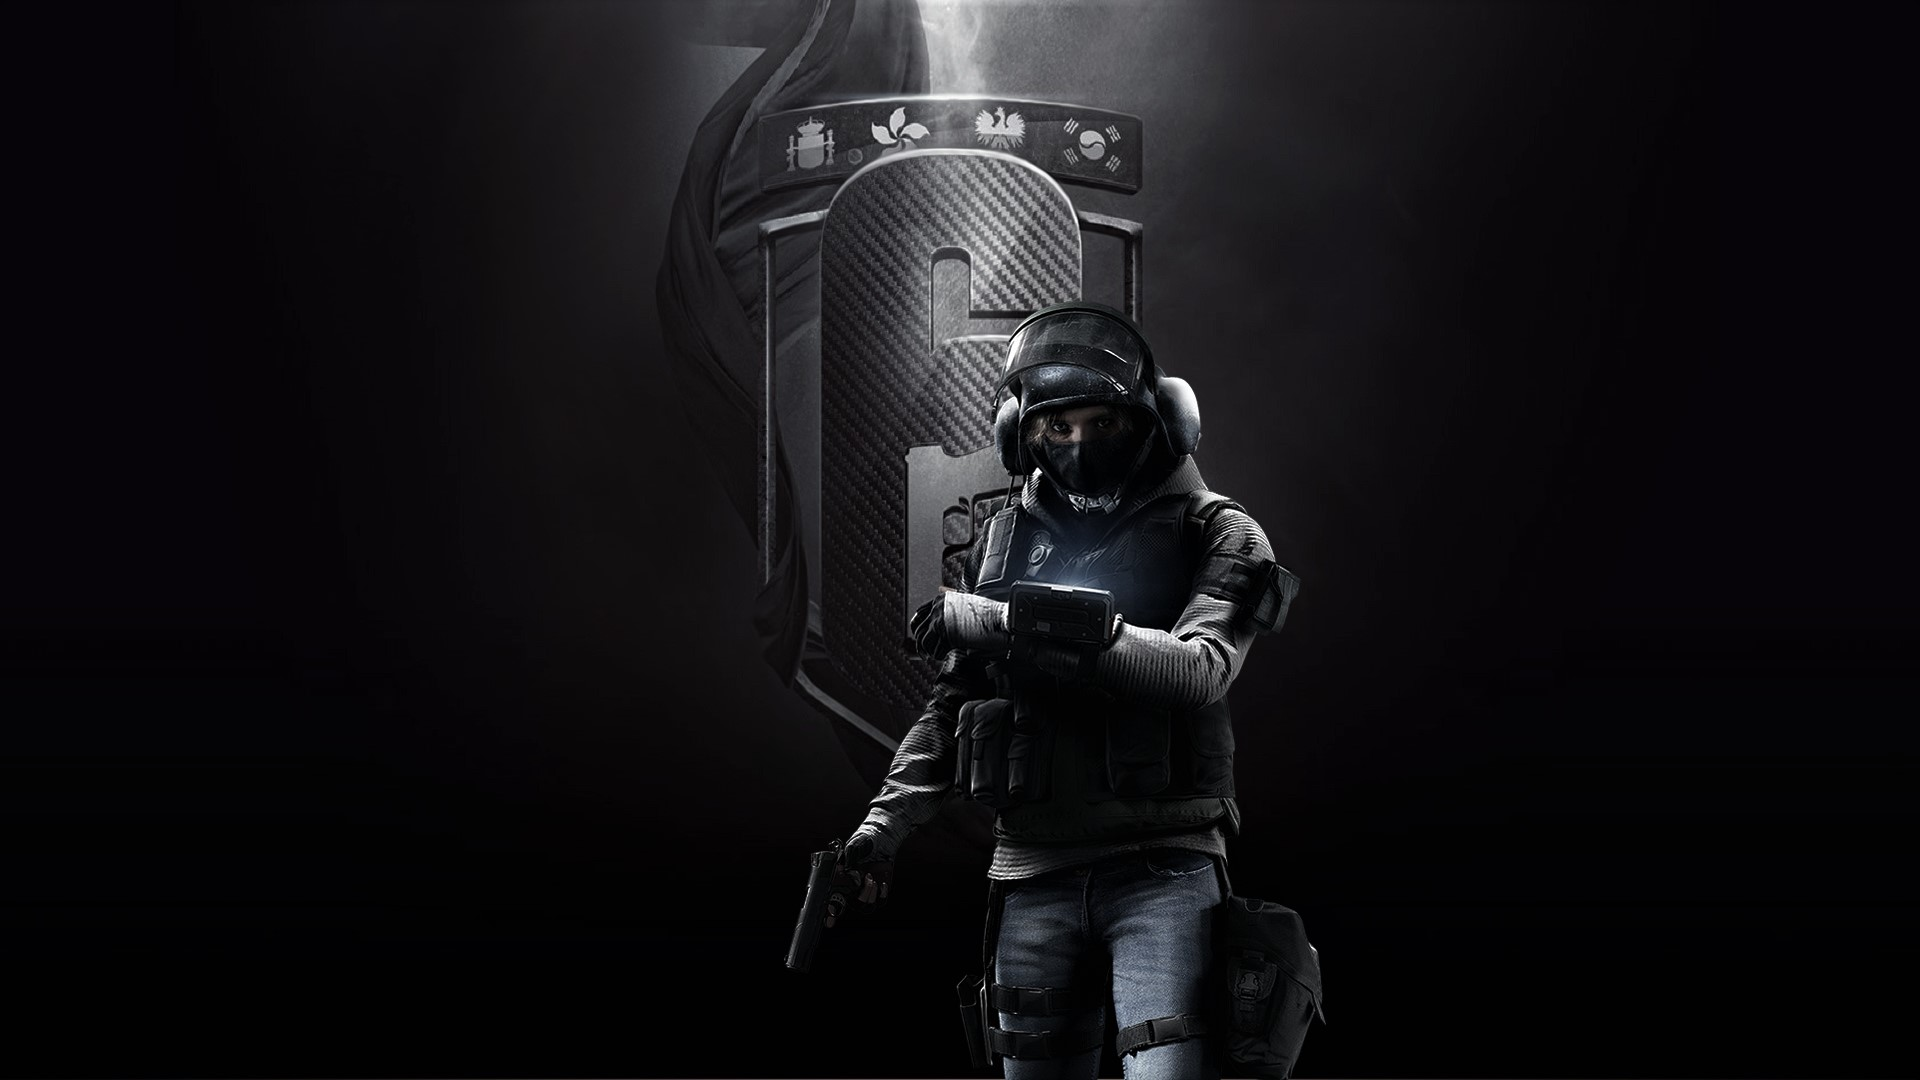 US $10 16 5% OFF|Rainbow Six Siege Posters Video Games Wallpaper, Home  Accessories Decorative Painting Silk Printing Process 38X67 Cm-in Painting  &